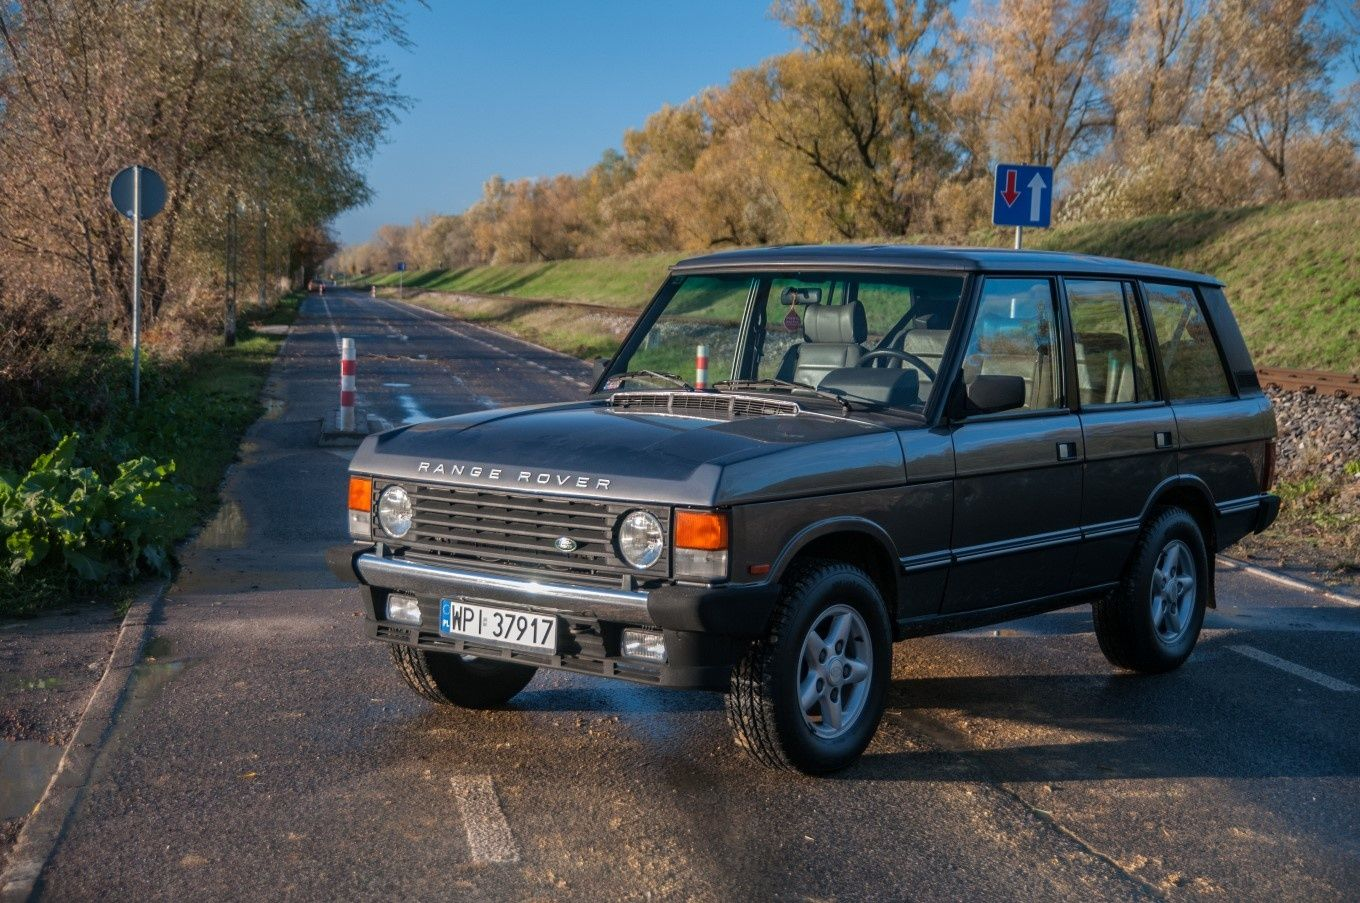 1991 Land Rover Range Rover - Classic | Classic Driver